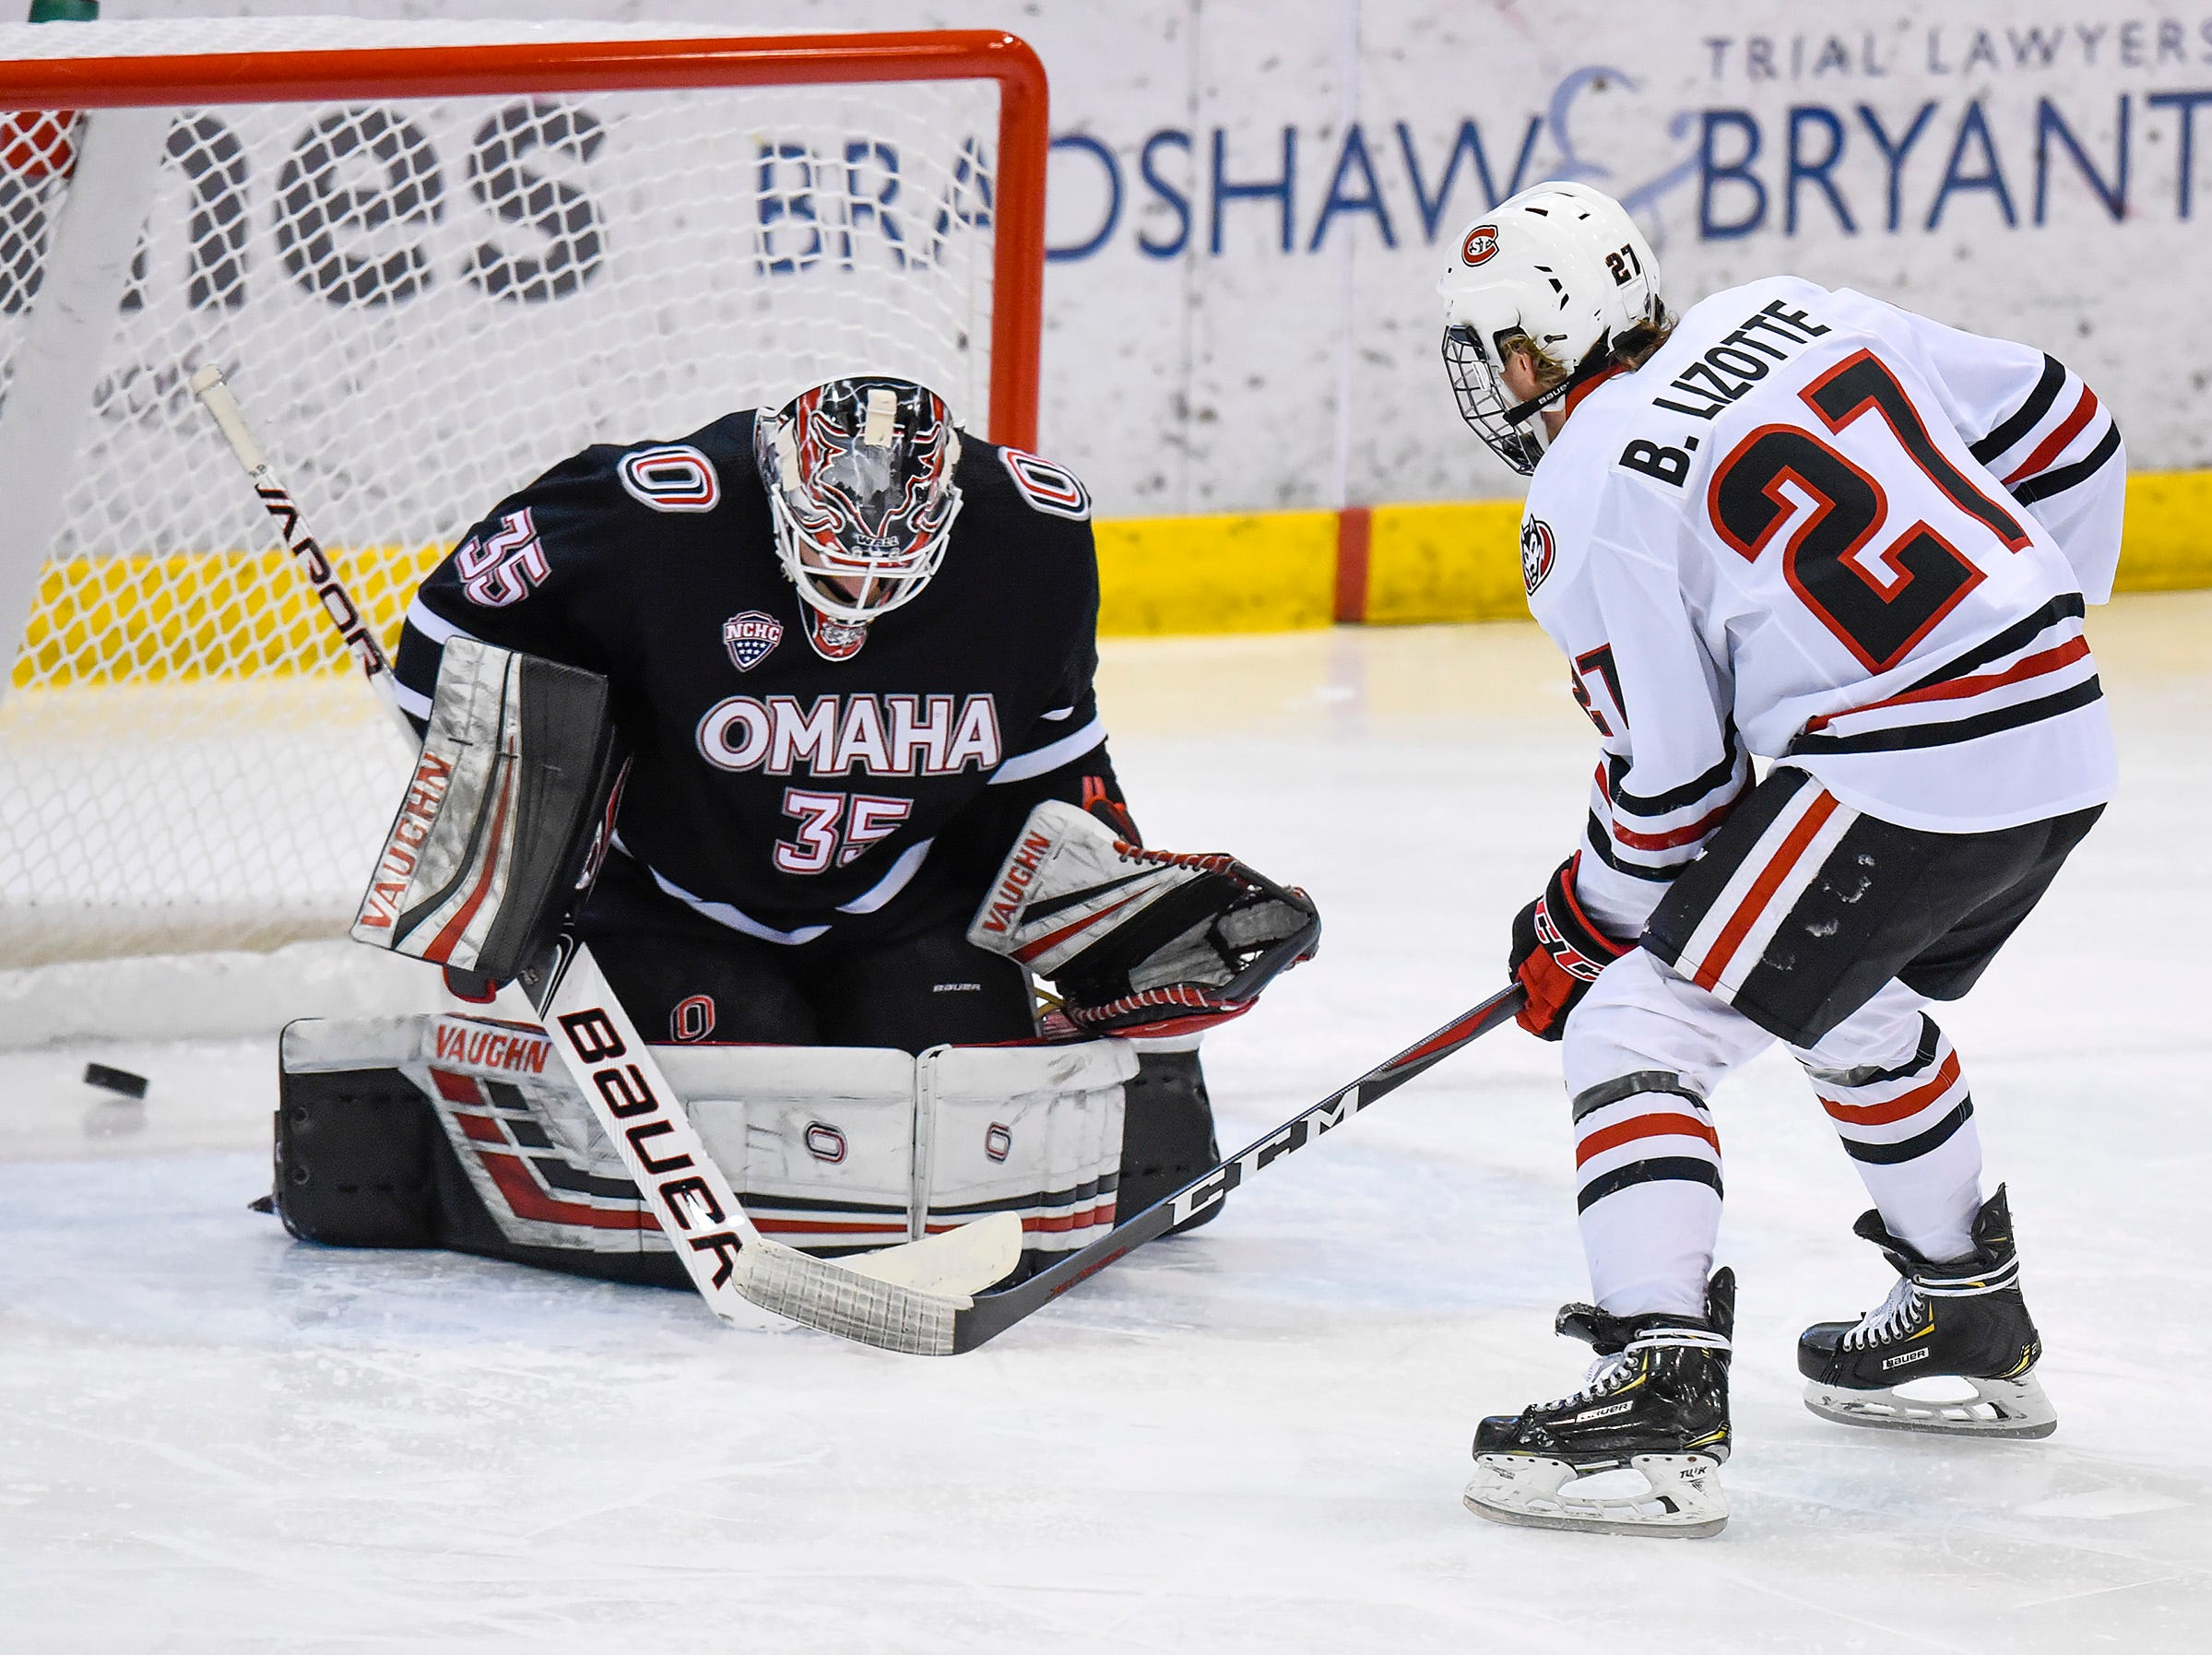 St. Cloud State's Blake Lizotte scores the first goal on Nebraska-Omaha goalie Evan Weninger during the first period Saturday, Dec. 8, at the Herb Brooks National Hockey Center.